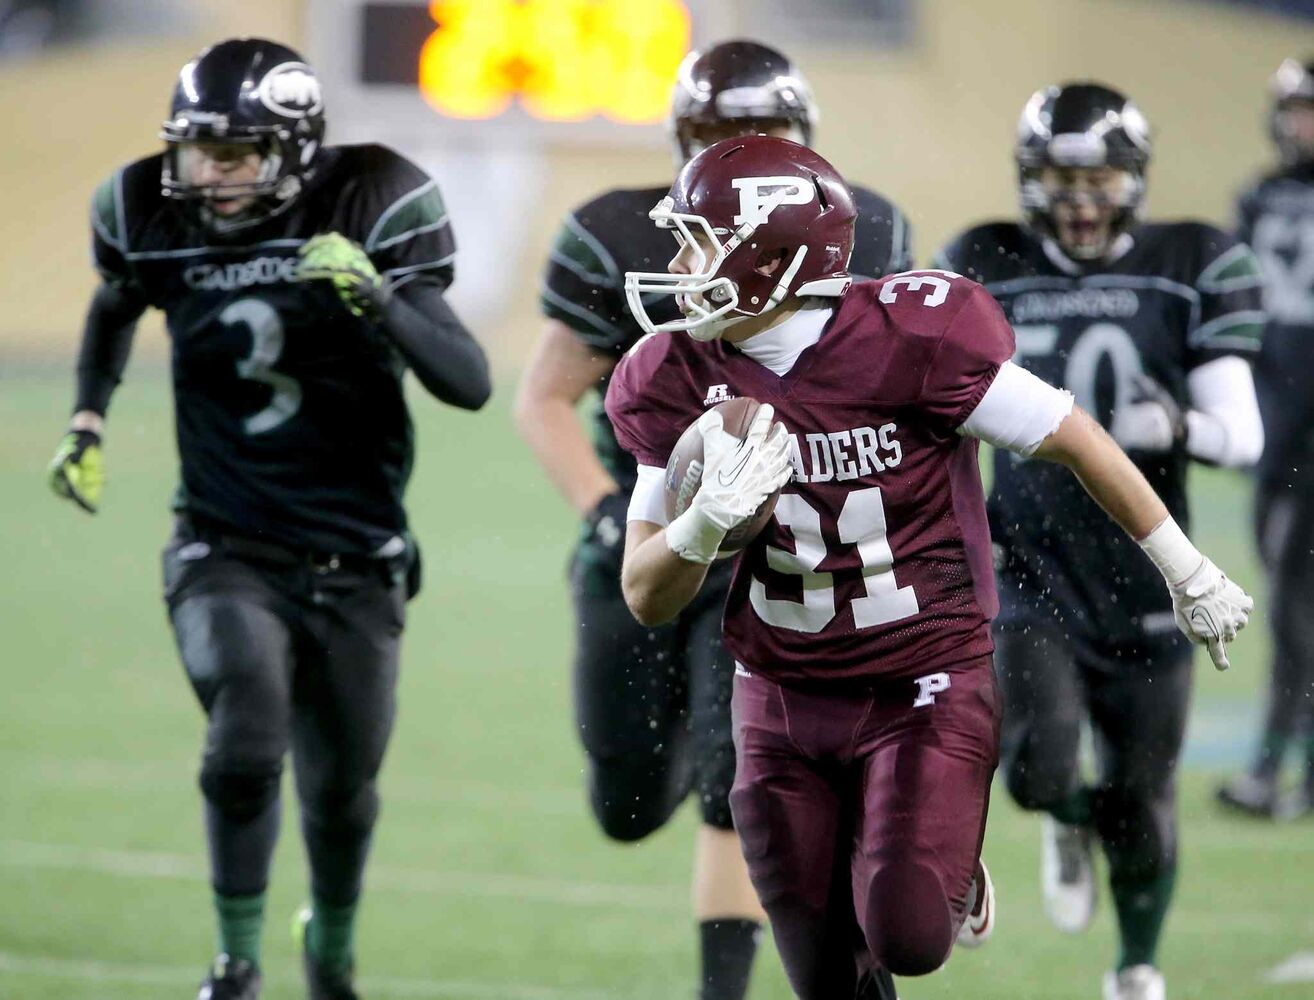 Austin Coutts of the St. Paul's Crusaders runs for an easy touchdown.